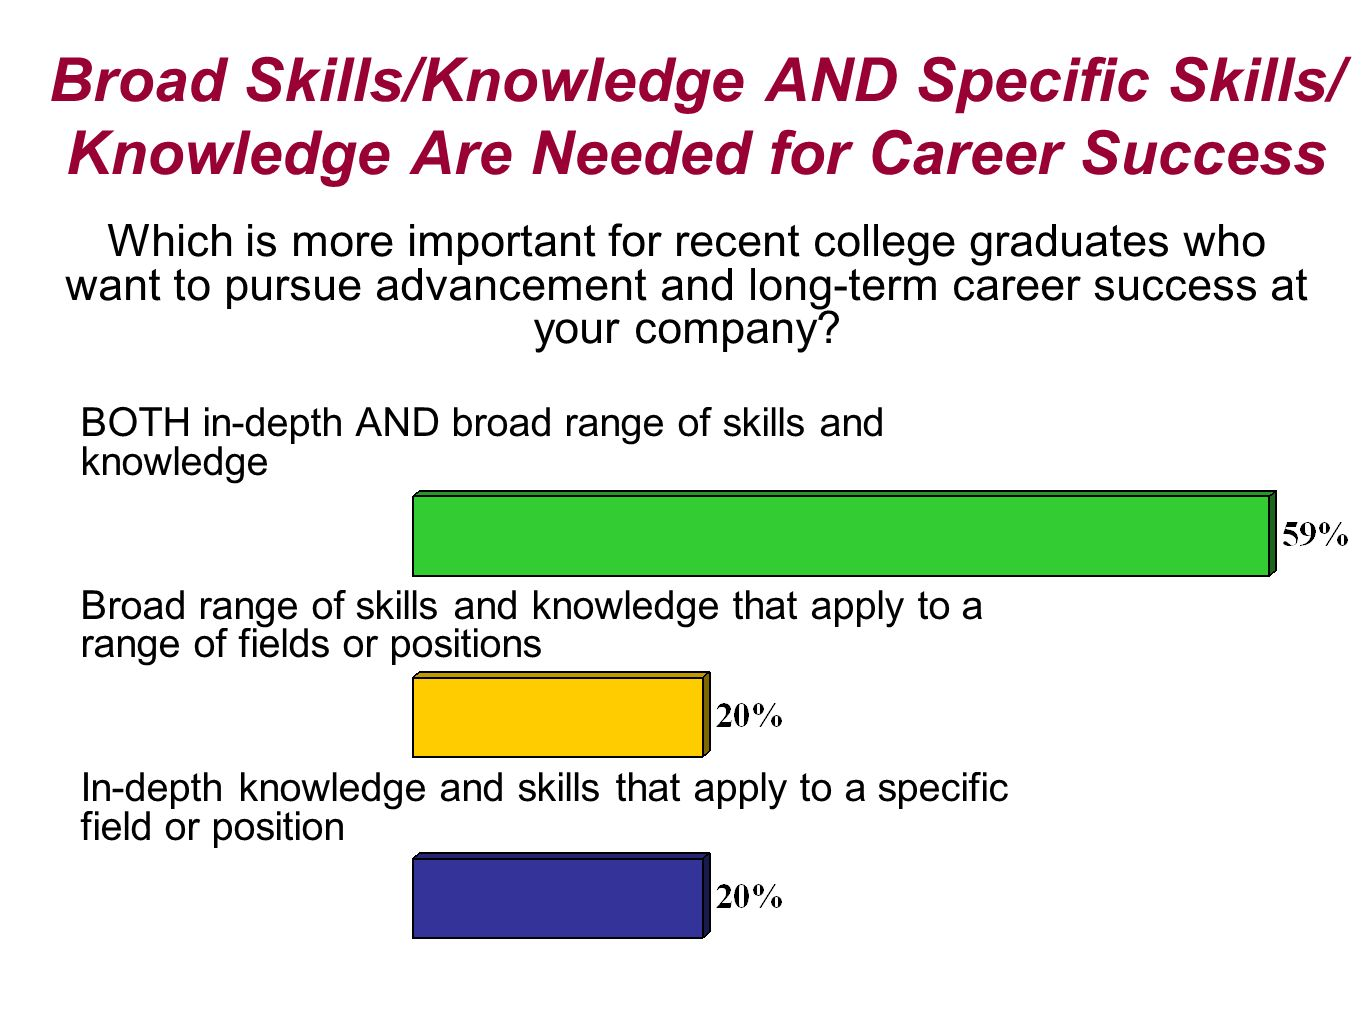 Broad Skills/Knowledge AND Specific Skills/ Knowledge Are Needed for Career Success